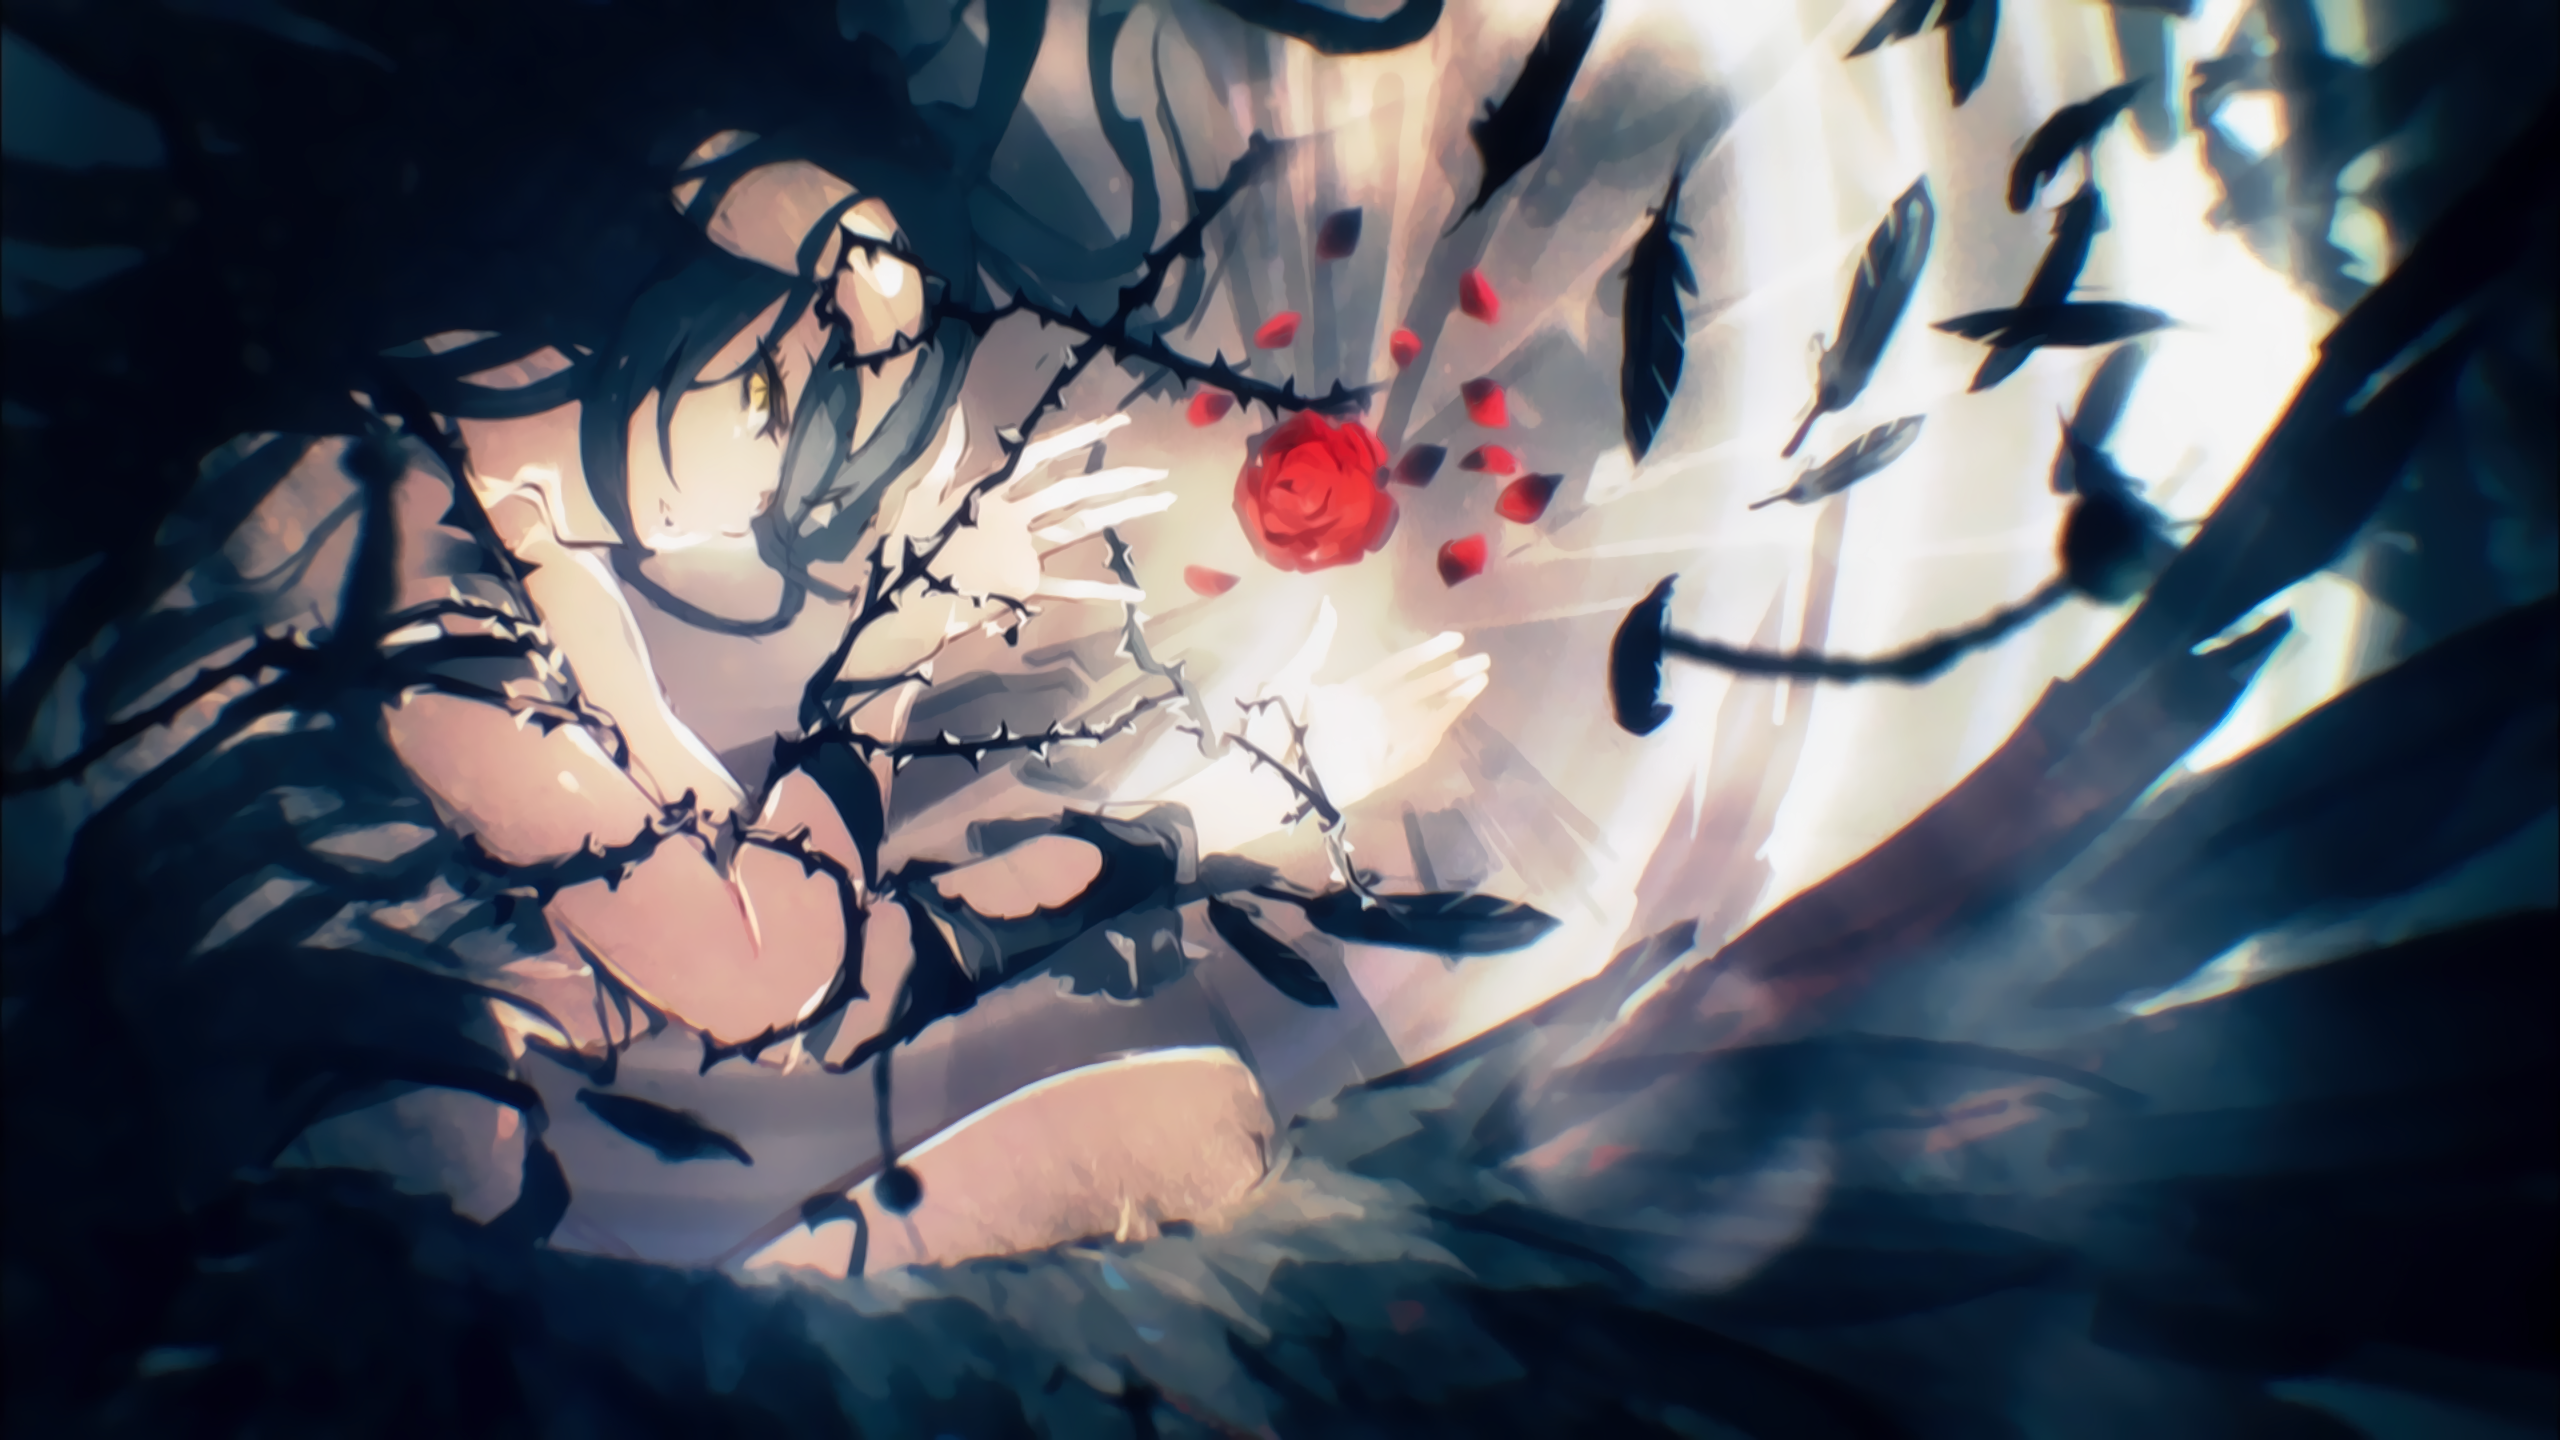 Overlord Albedo Overlord Anime Thorns Wallpaper Overlord 3 Ending Art 1742133 Hd Wallpaper Backgrounds Download